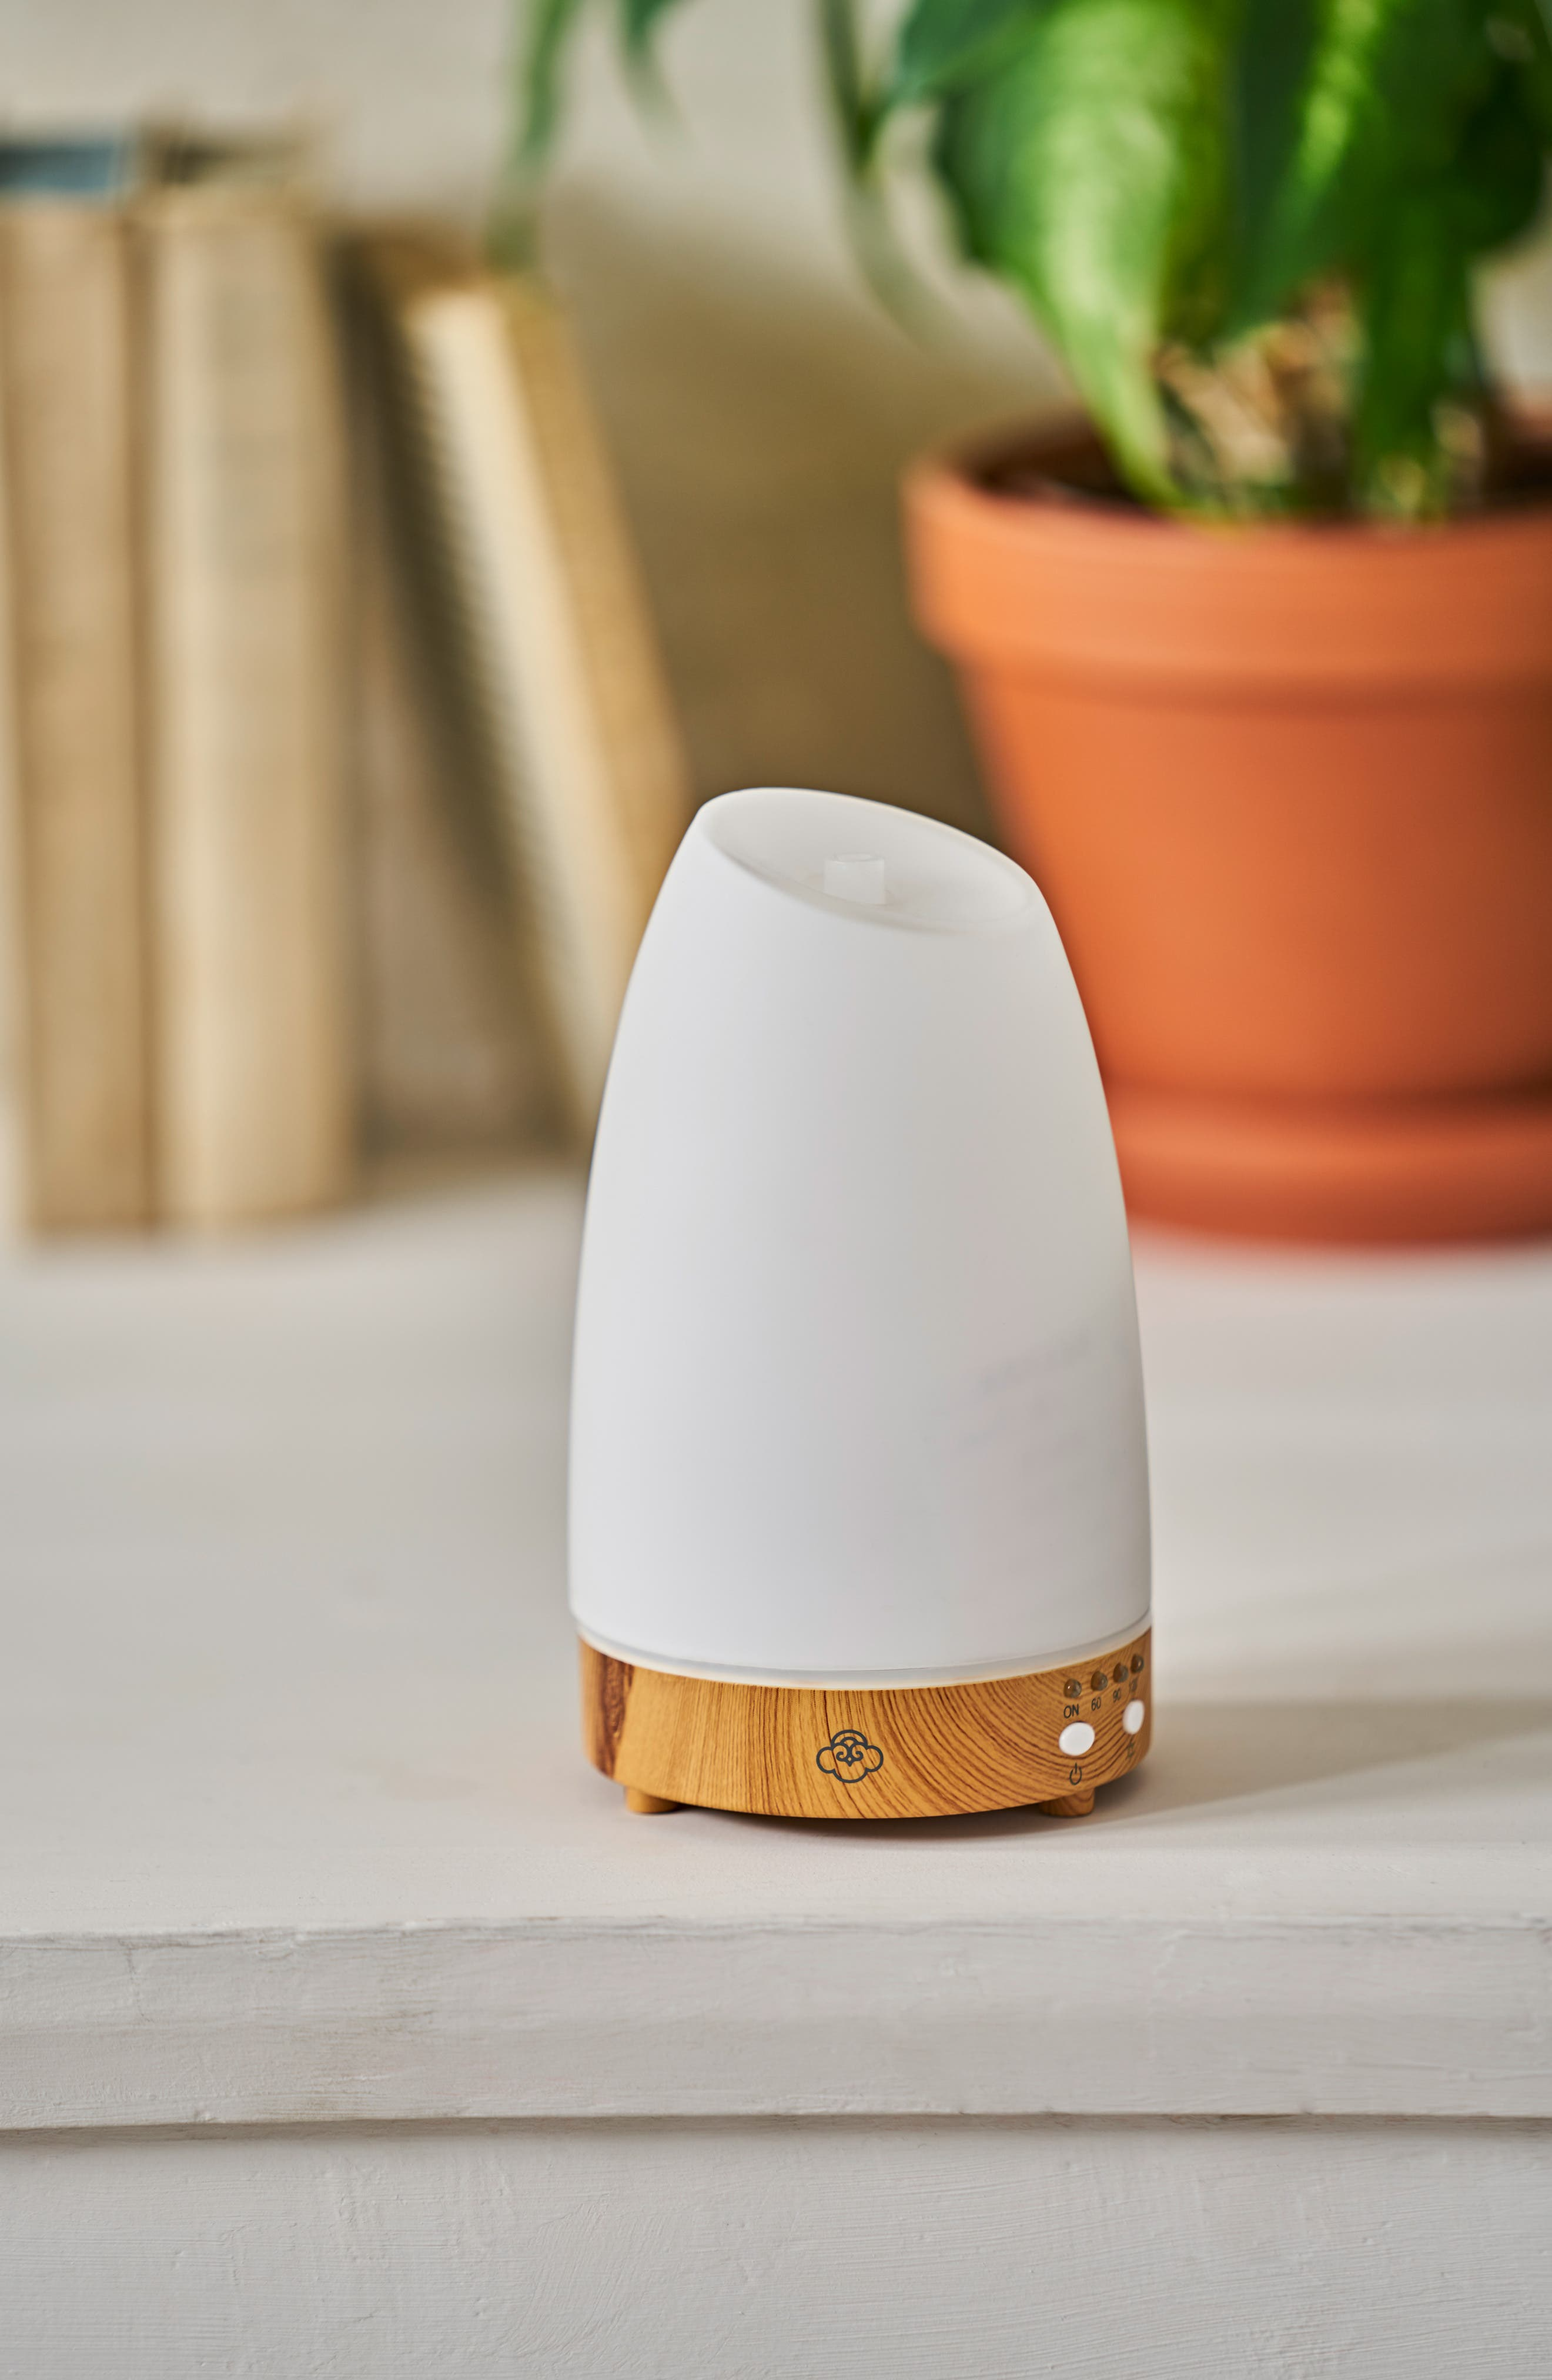 SERENE HOUSE, Ultrasonic Cool Mist Aromatherapy Diffuser, Alternate thumbnail 3, color, WHITE